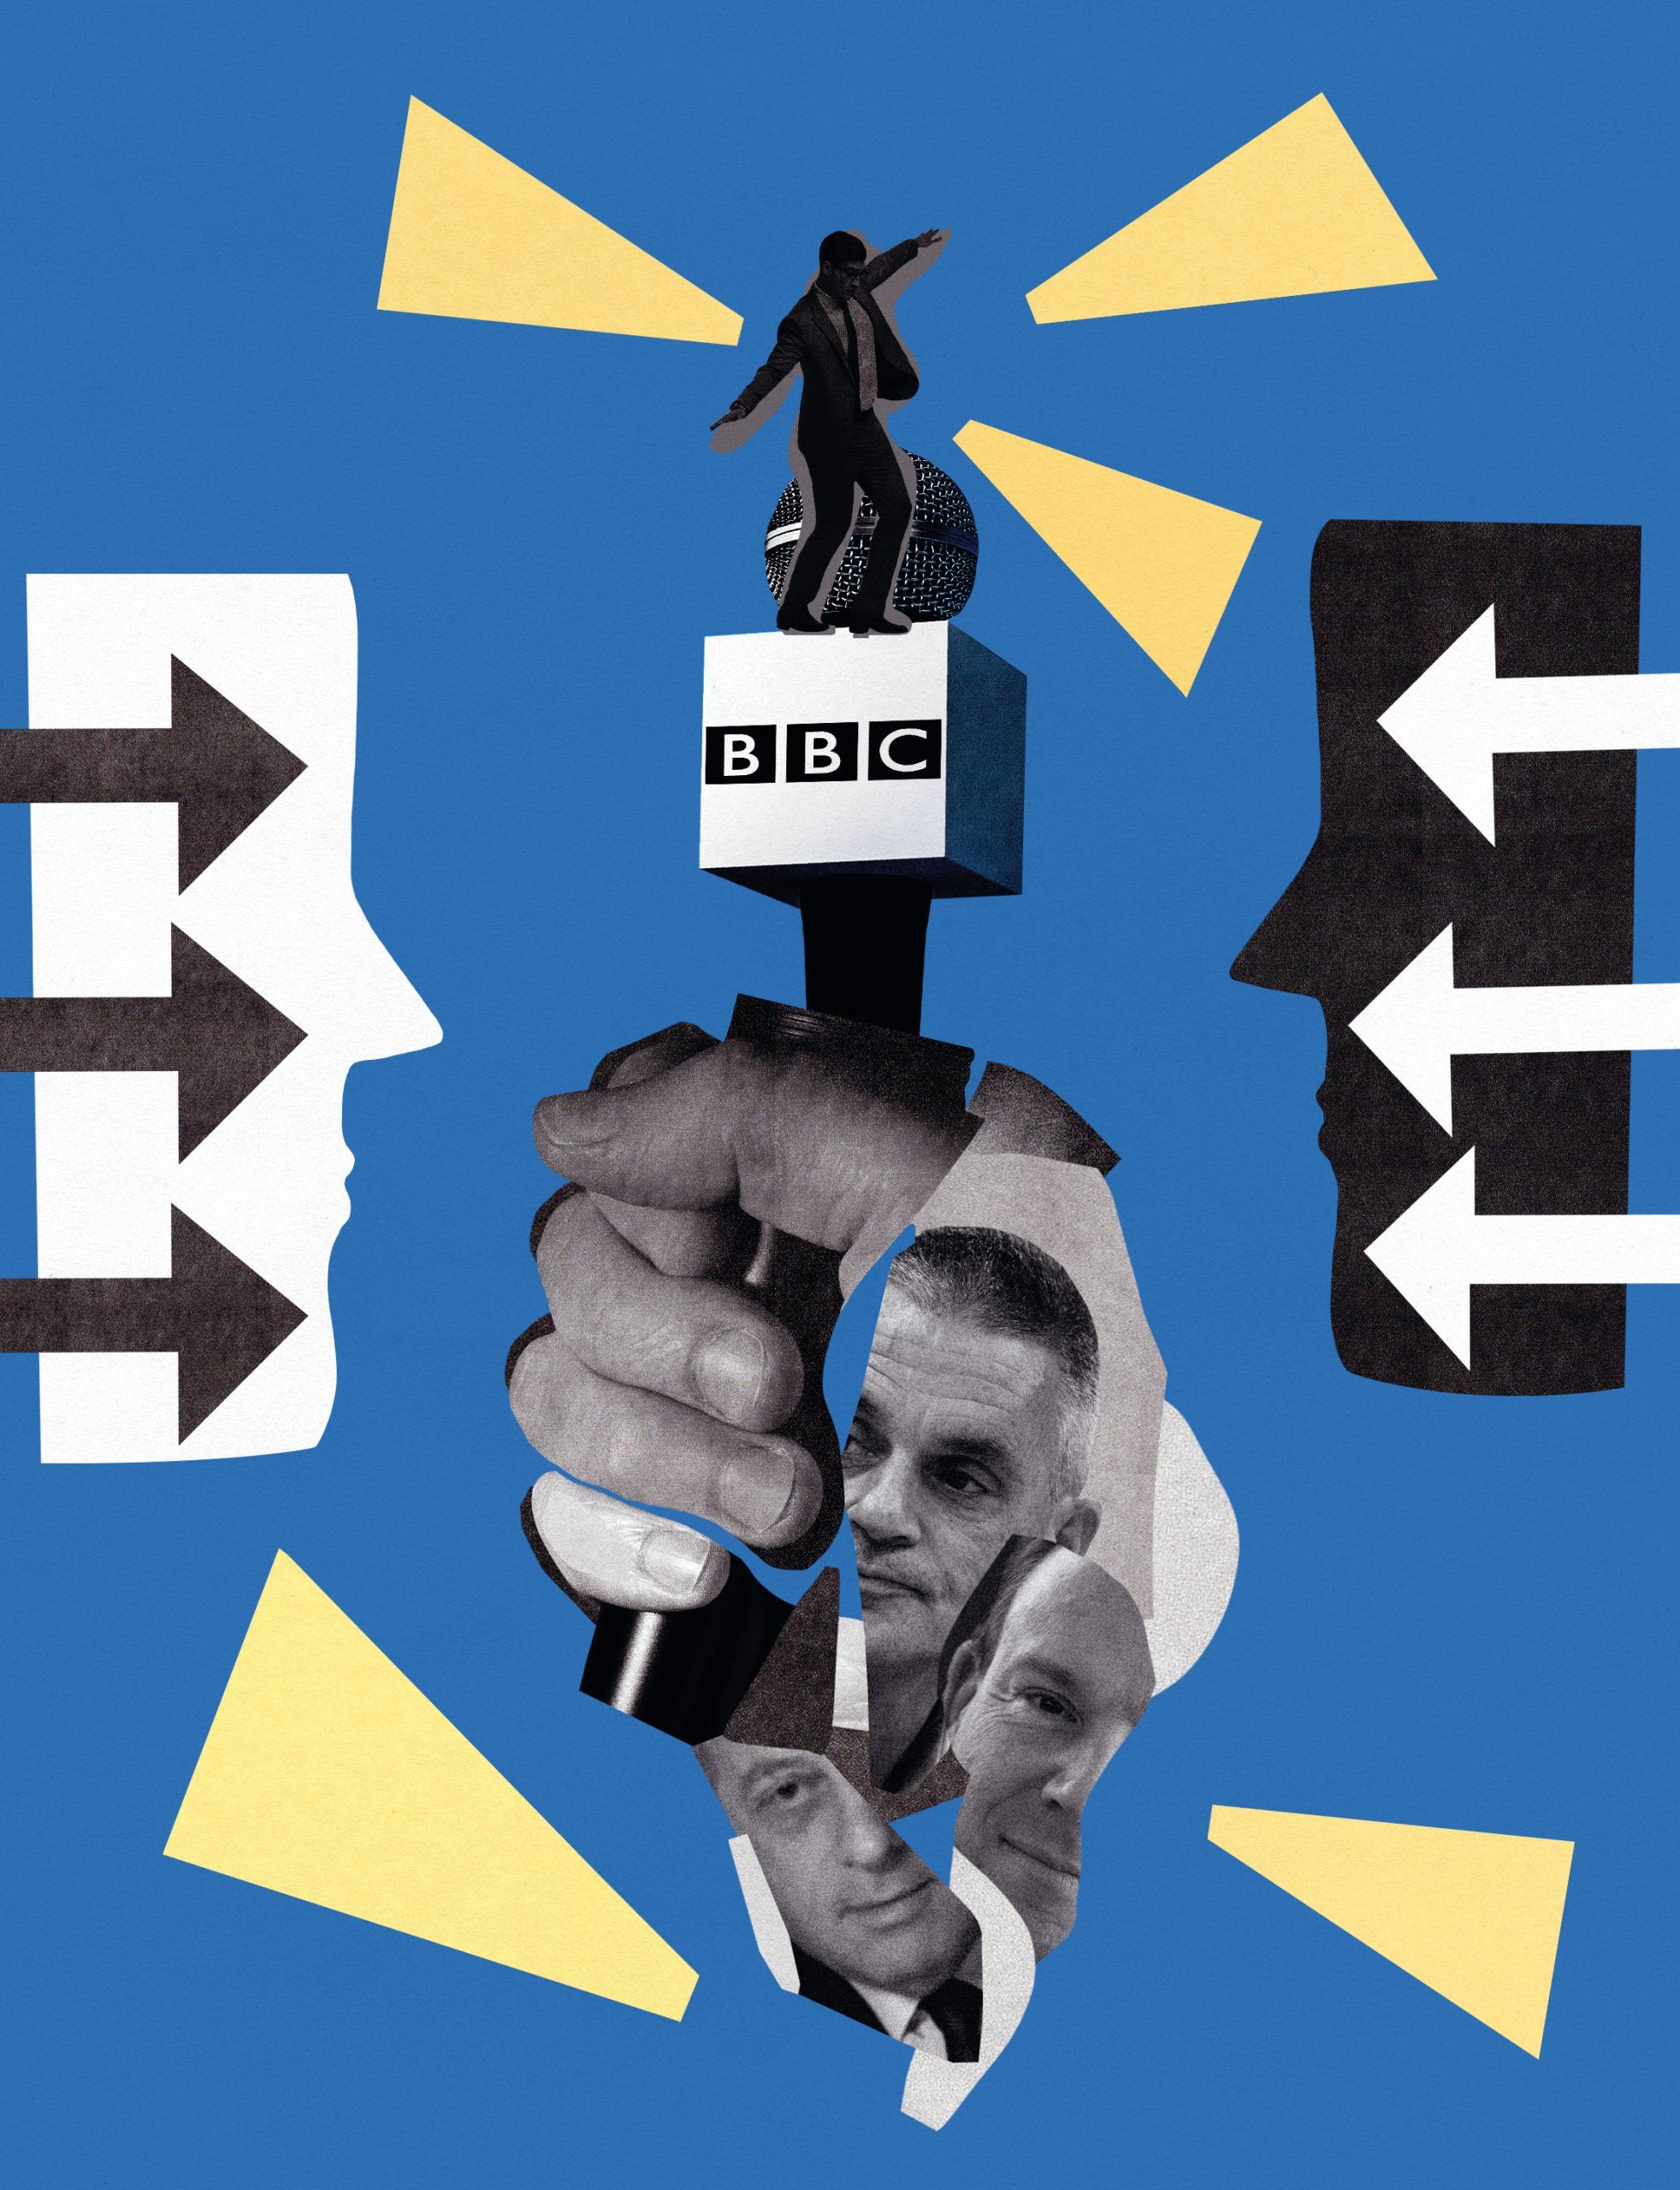 The BBC and the battle for truth